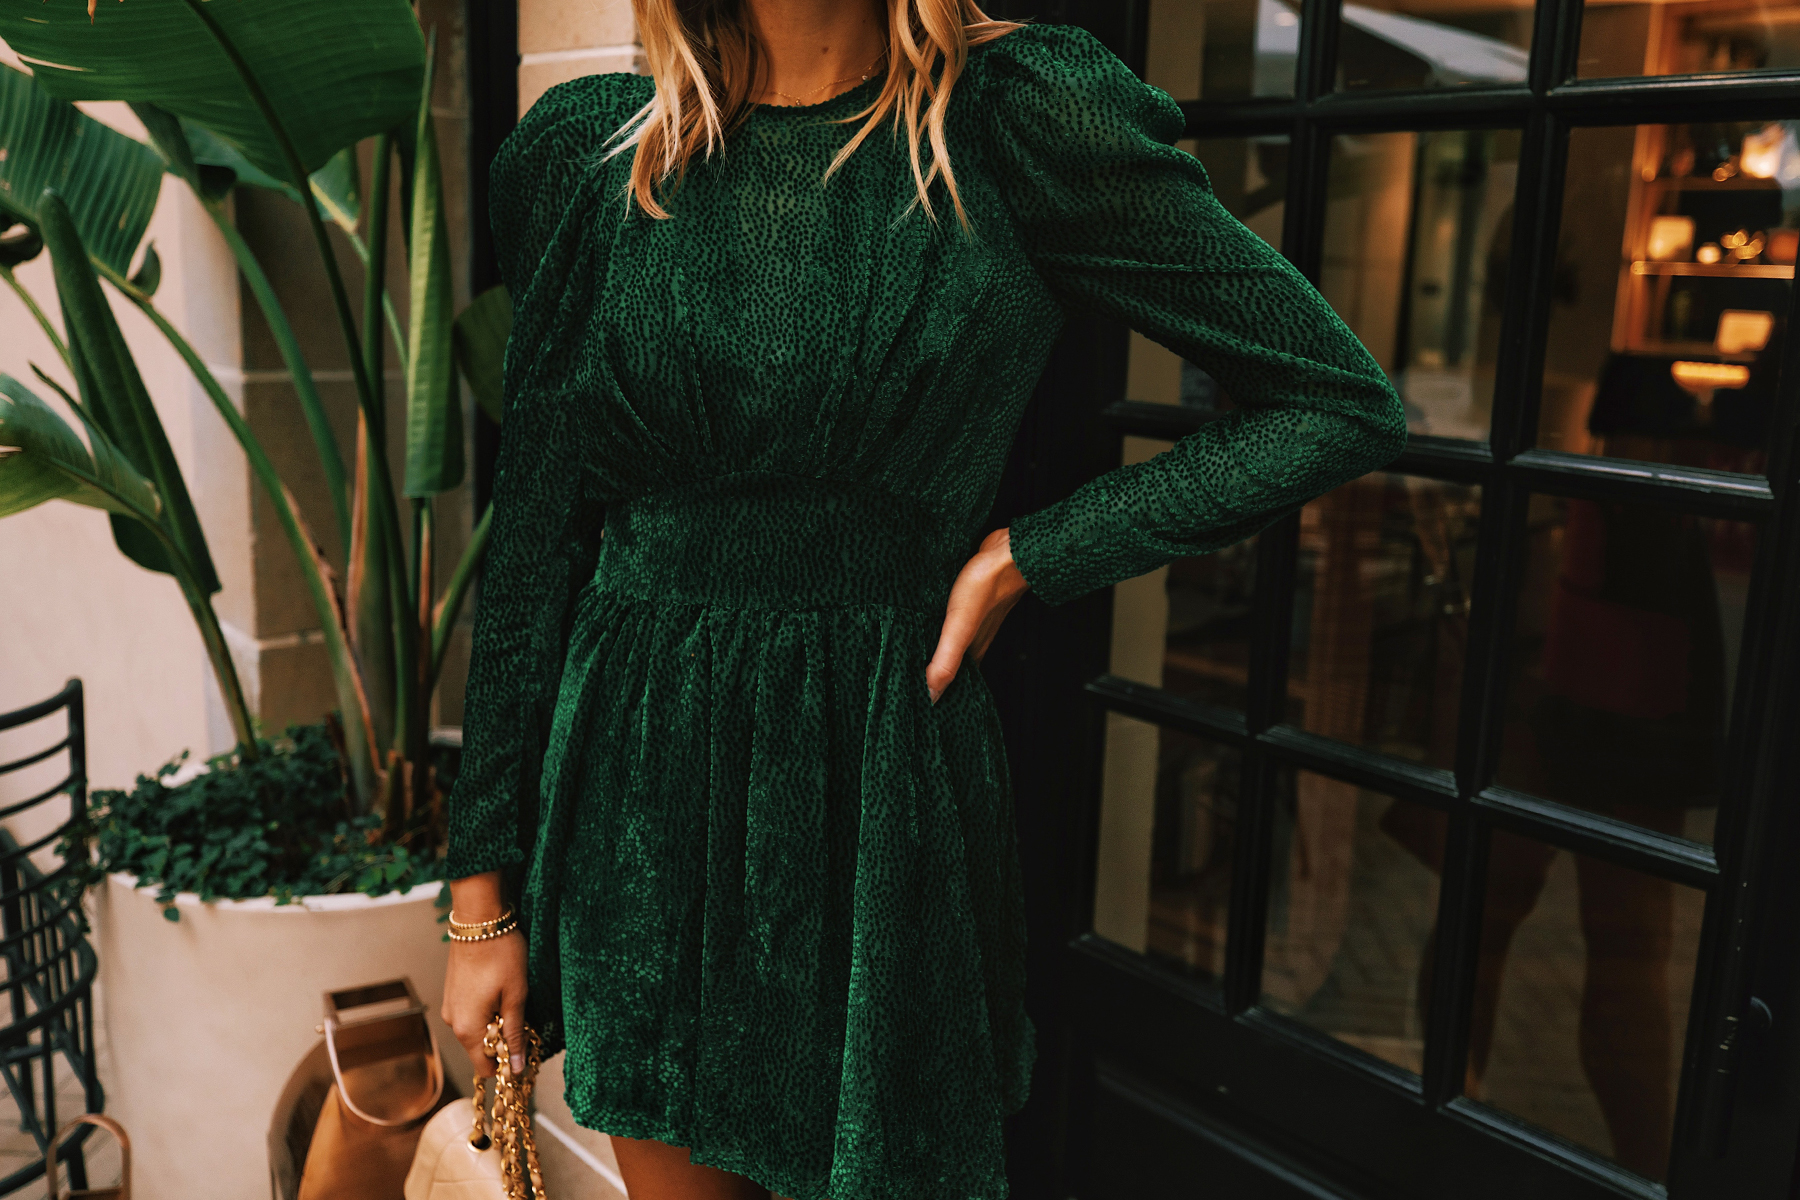 A Green Velvet Holiday Dress For When You Re Wanting To Look Extra Festive Fashion Jackson